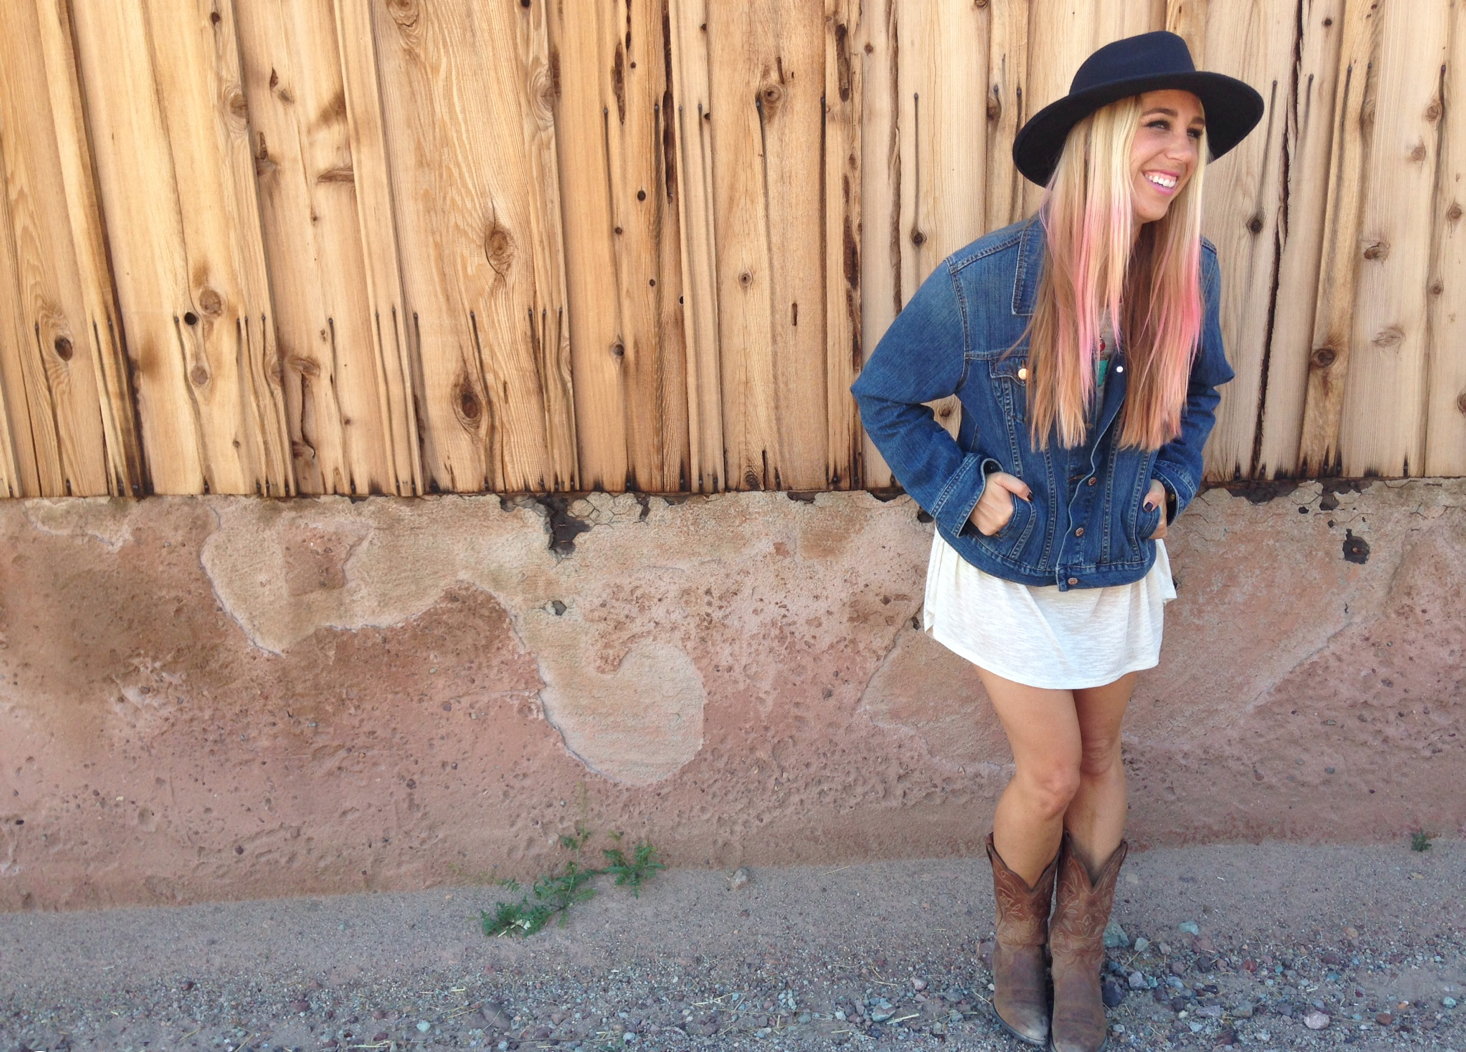 Featured on Established California - Top Festival Fashions for 2015